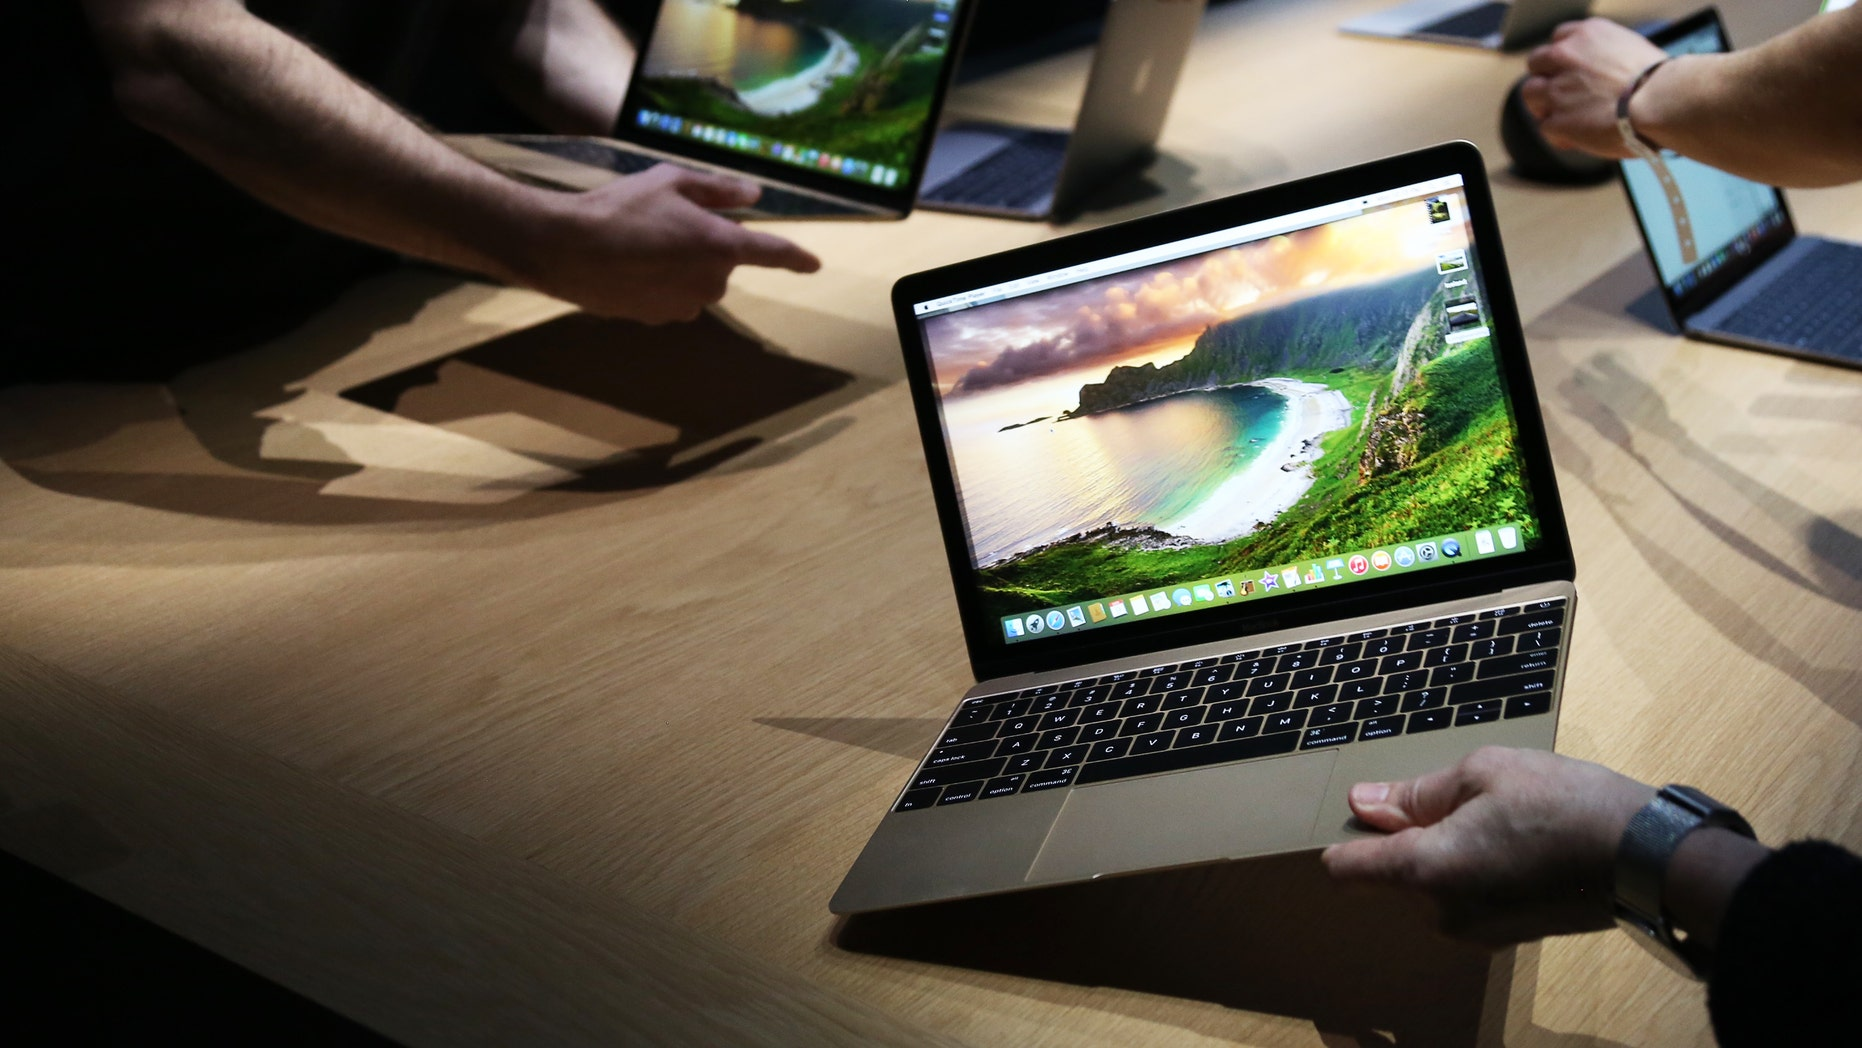 Apple's new MacBooks are displayed following an Apple event in San Francisco, California March 9, 2015.